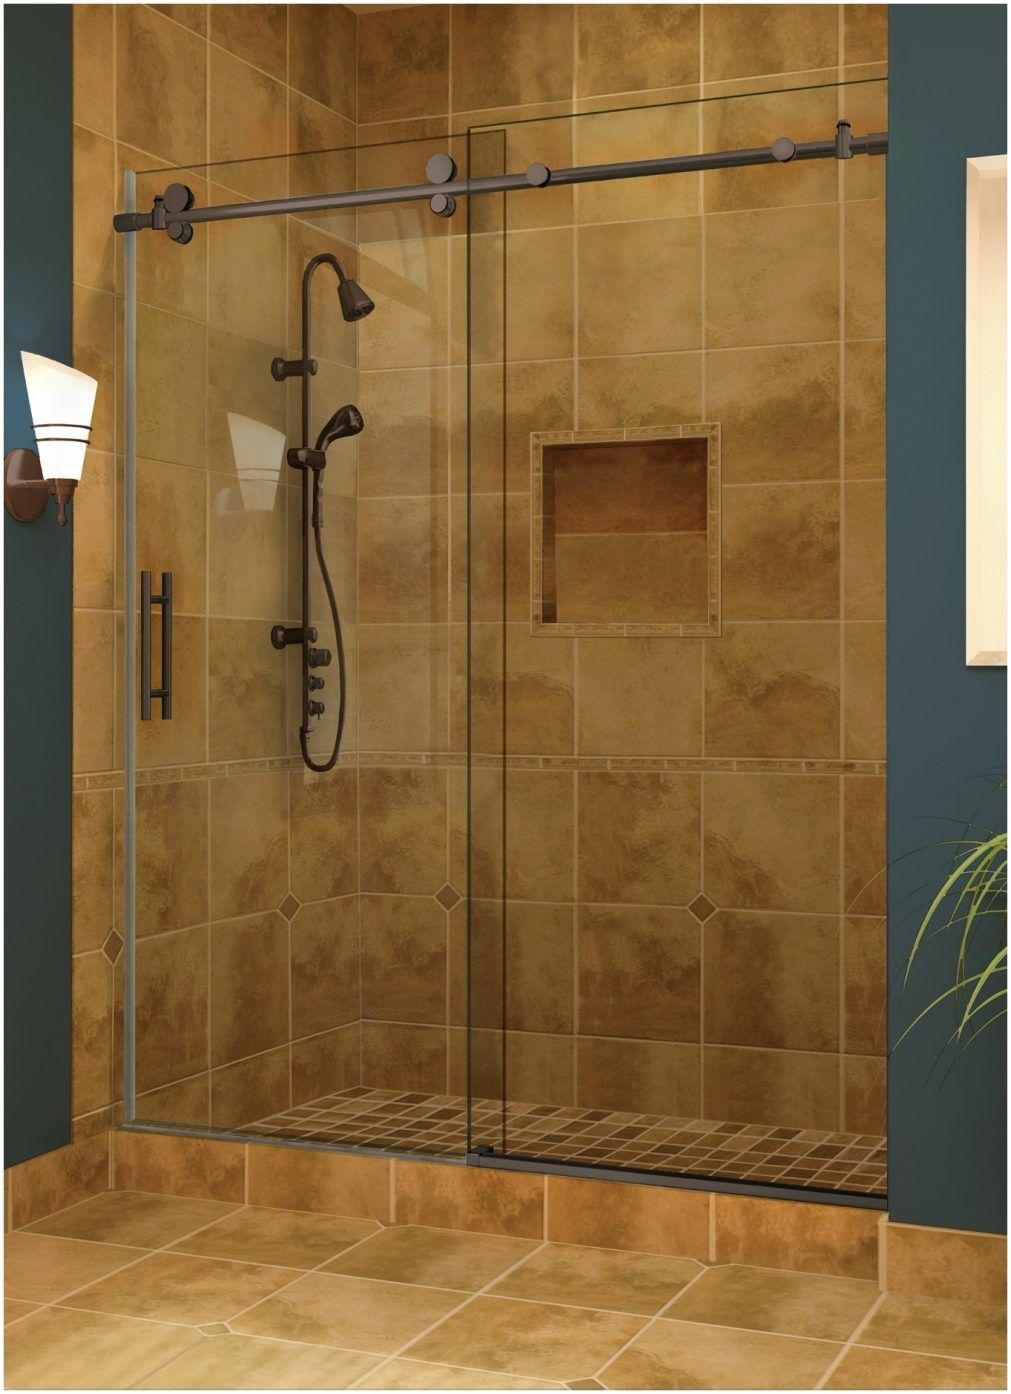 Sliding Shower Door Bottom Sill Guide | http://sourceabl.com ...